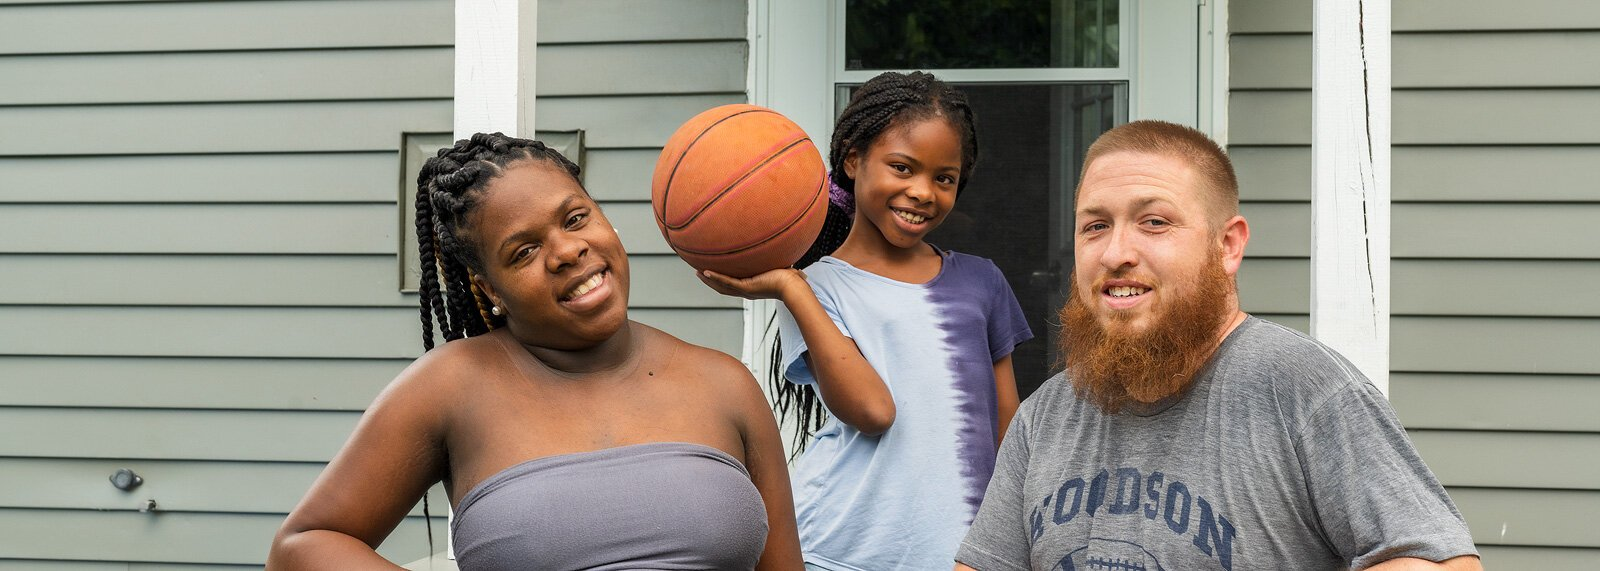 Adriya Perry, her daughter Akavayia, and husband Phil outside their new home in Ypsilanti Township.